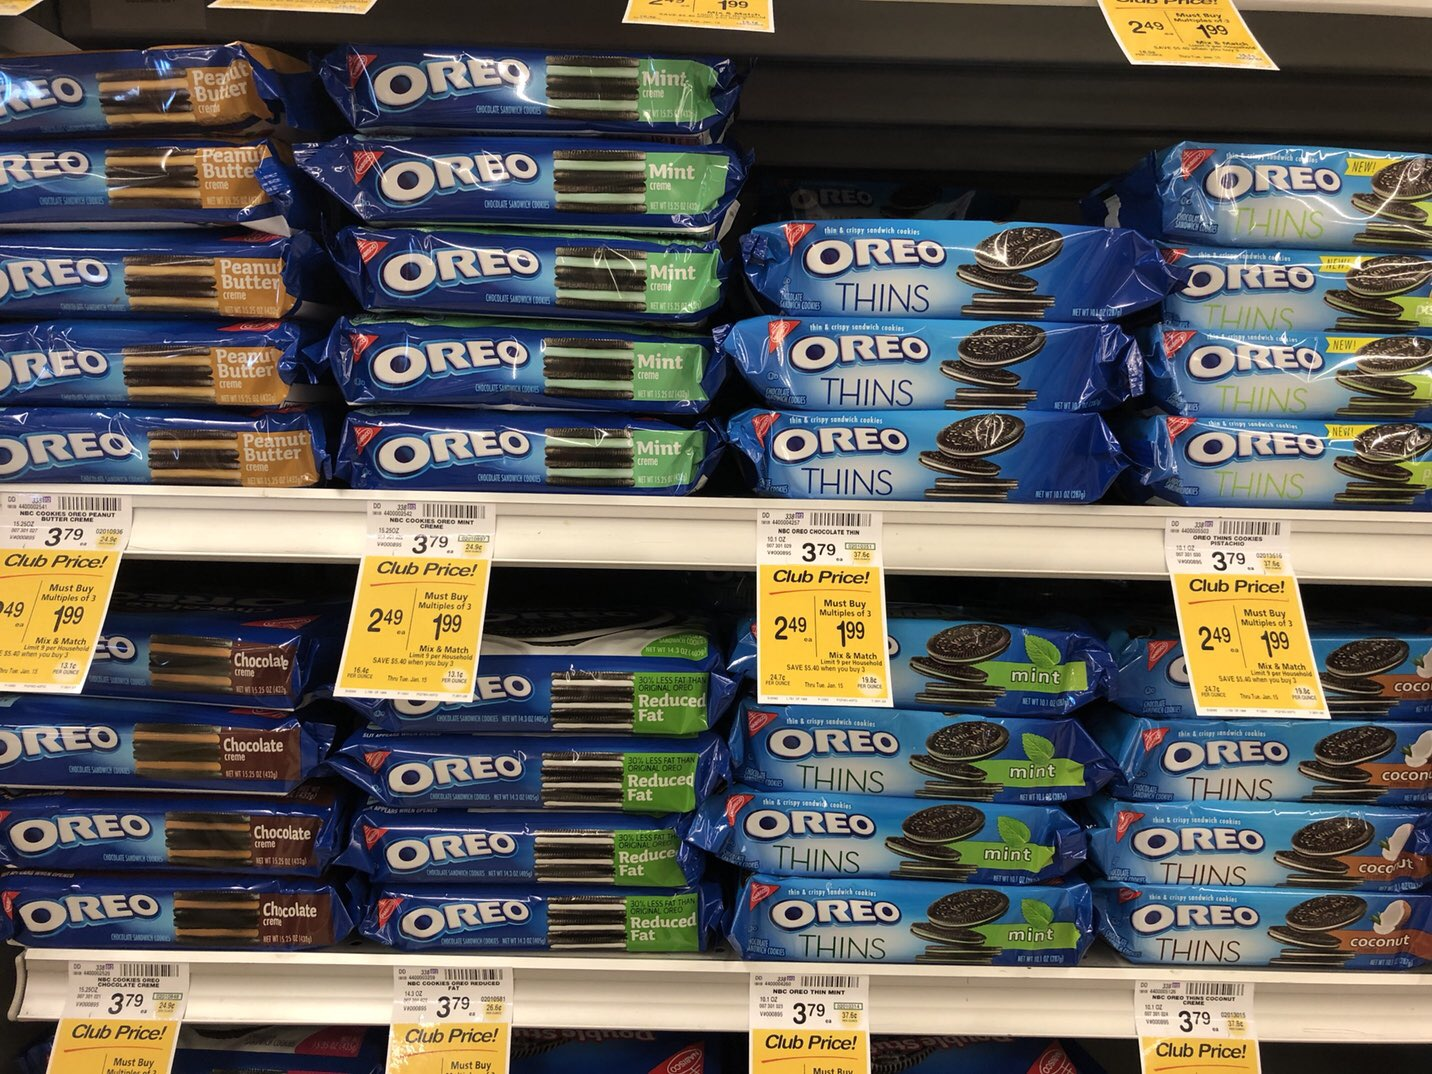 graphic regarding Oreo Printable Coupons referred to as Refreshing OREO Discount codes - Spend Merely $1.49 a Offer at Safeway- 61